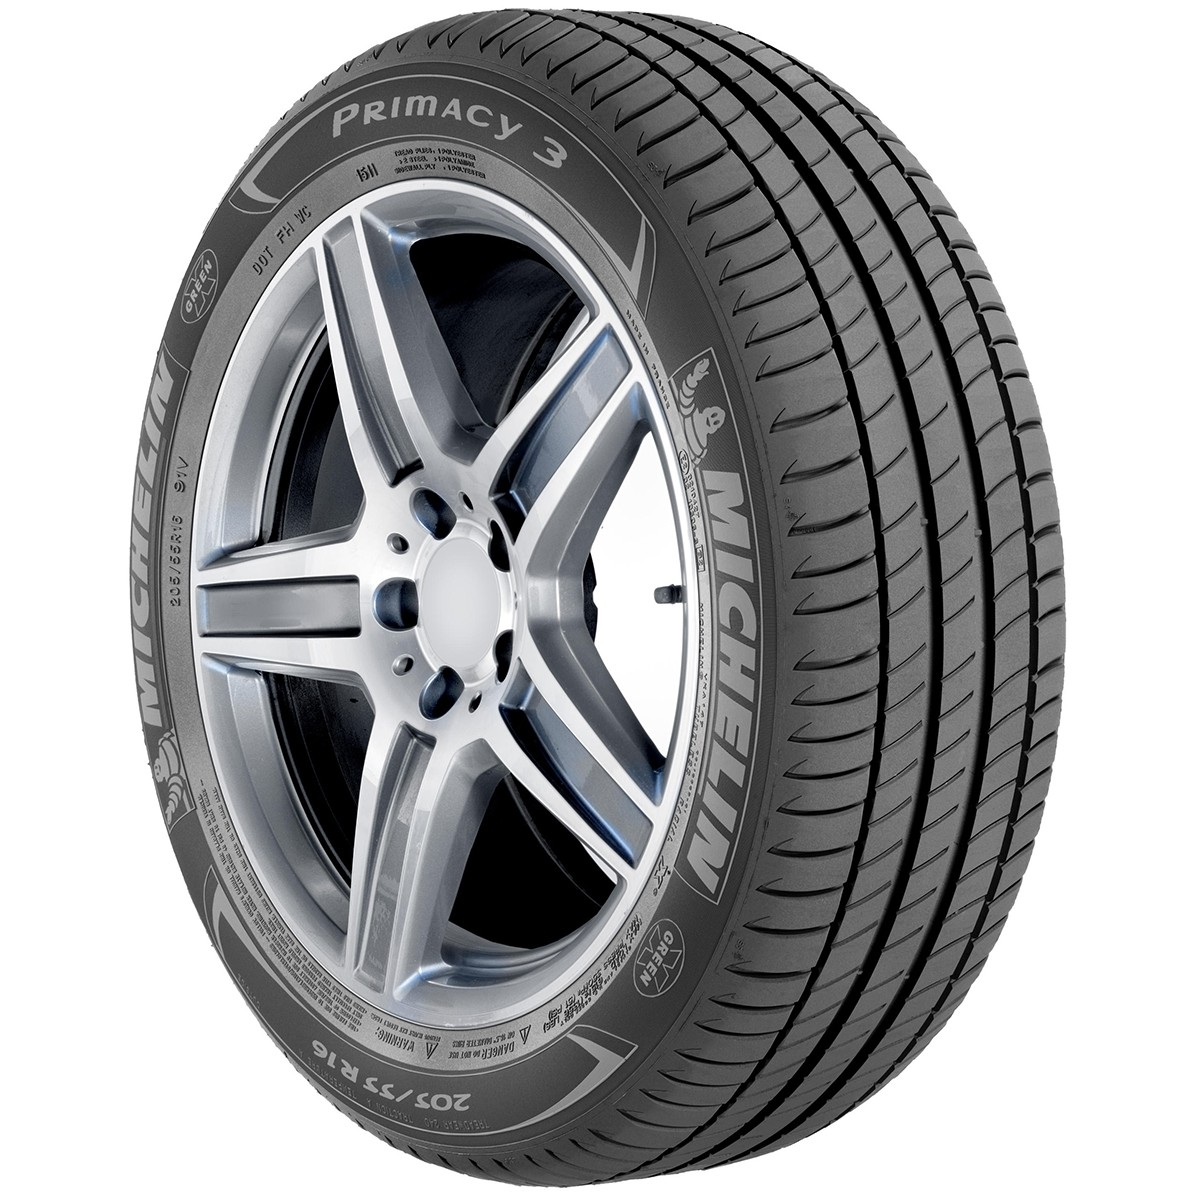 225/60 R17 [99] V PRIMACY 3 - MICHELIN